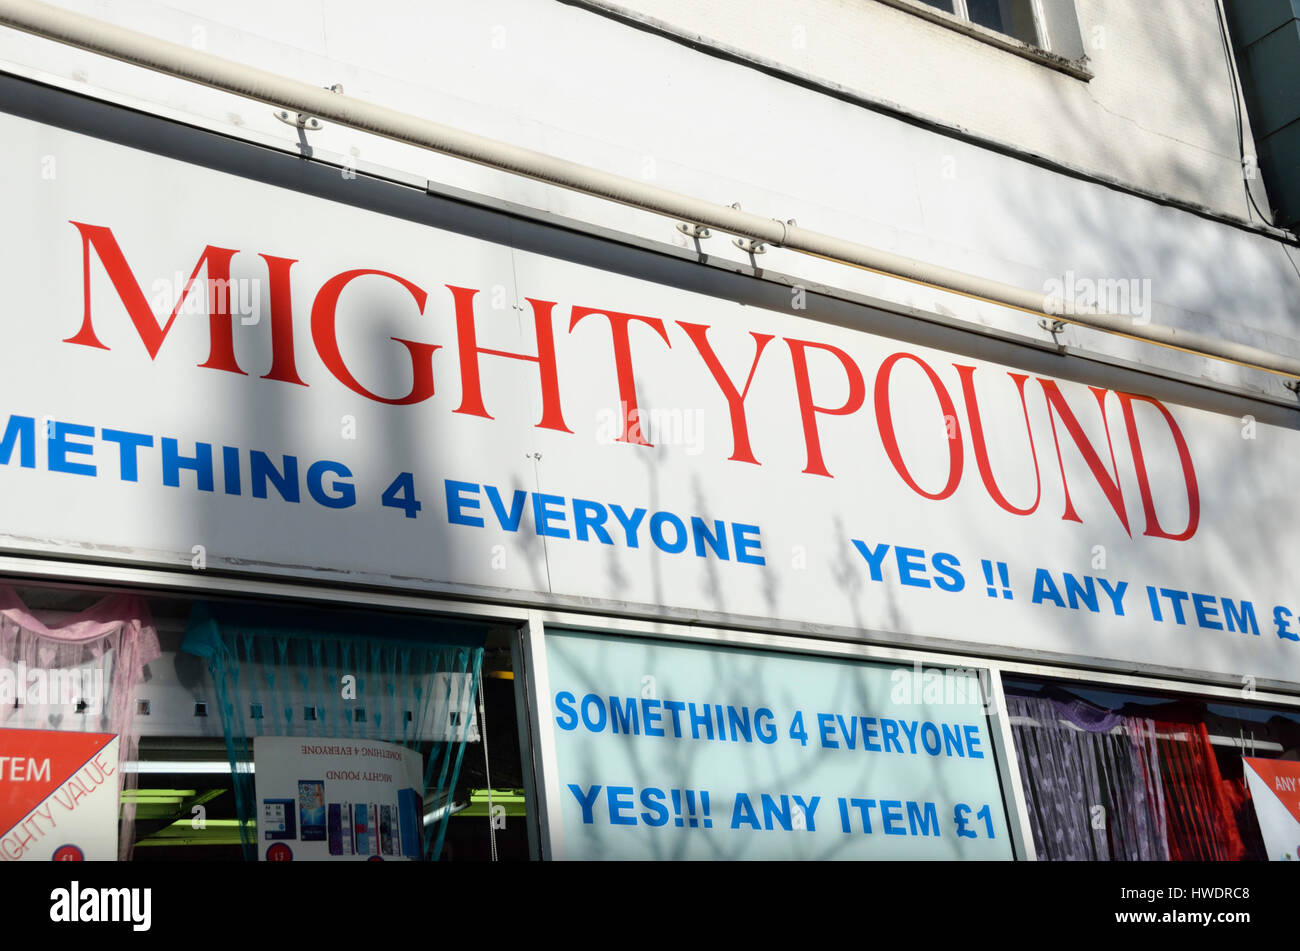 Mighty Pound sign on shop front. - Stock Image